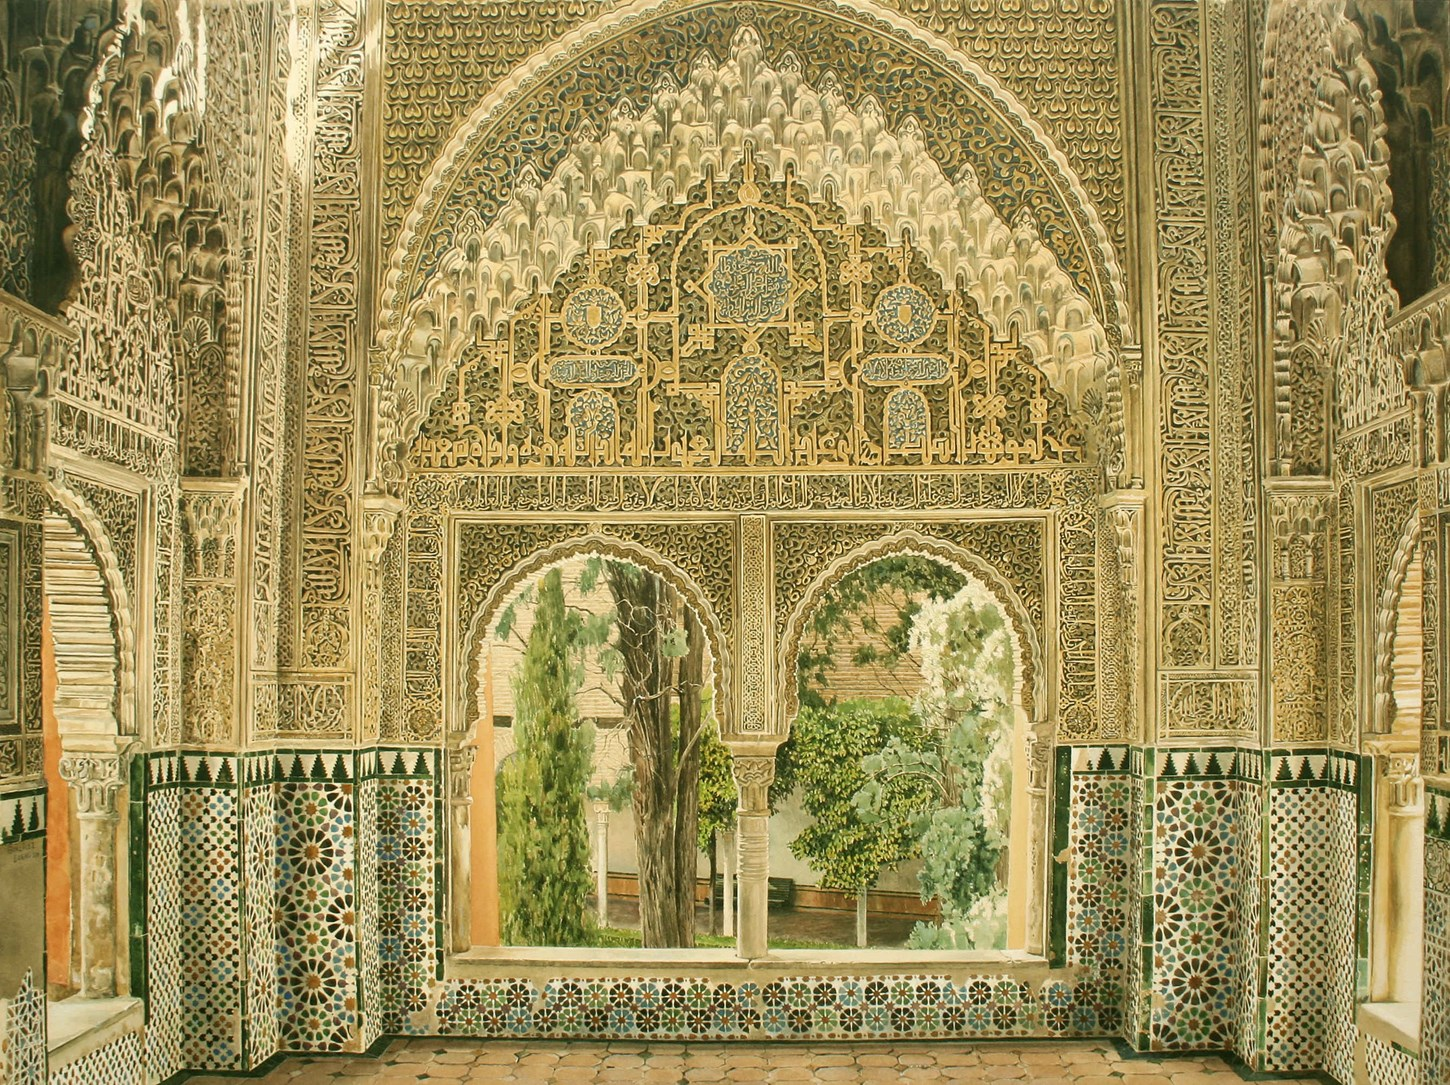 Window to the Lindajara (or Daraxa) courtyard, Alhambra